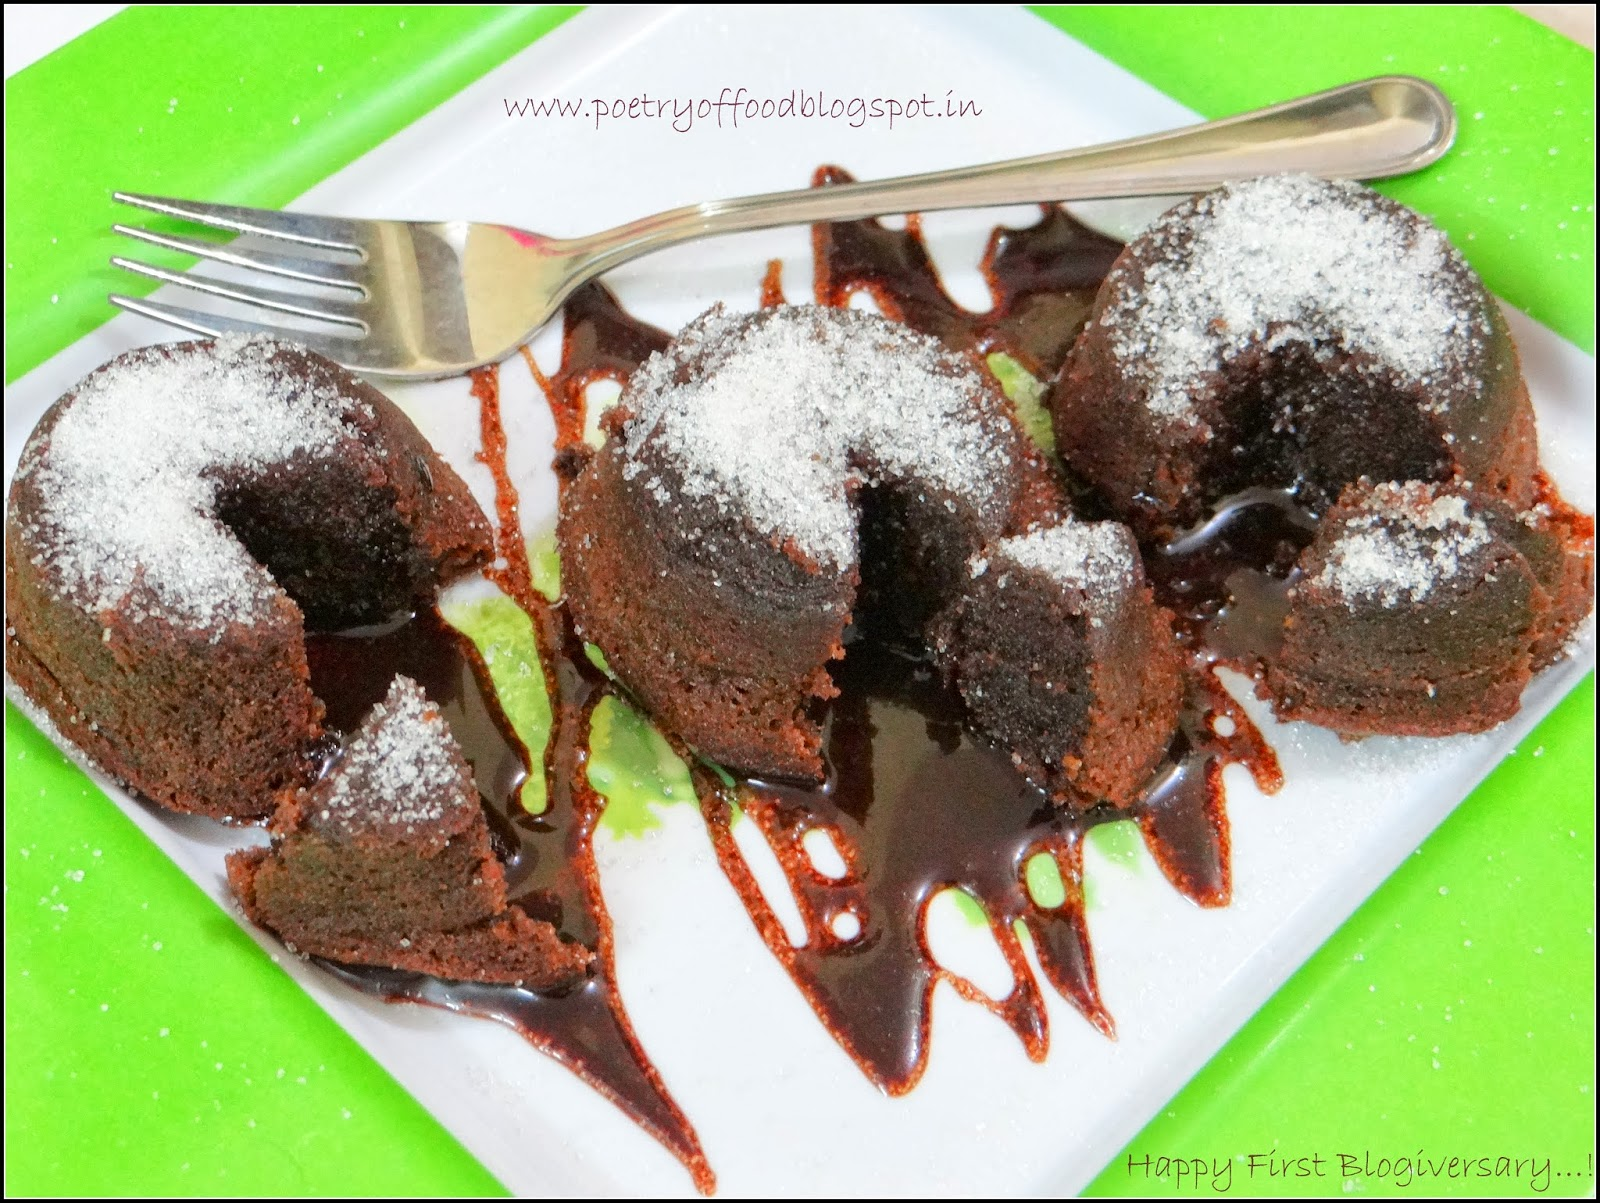 How To Make Choco Lava Cake At Home In Microwave